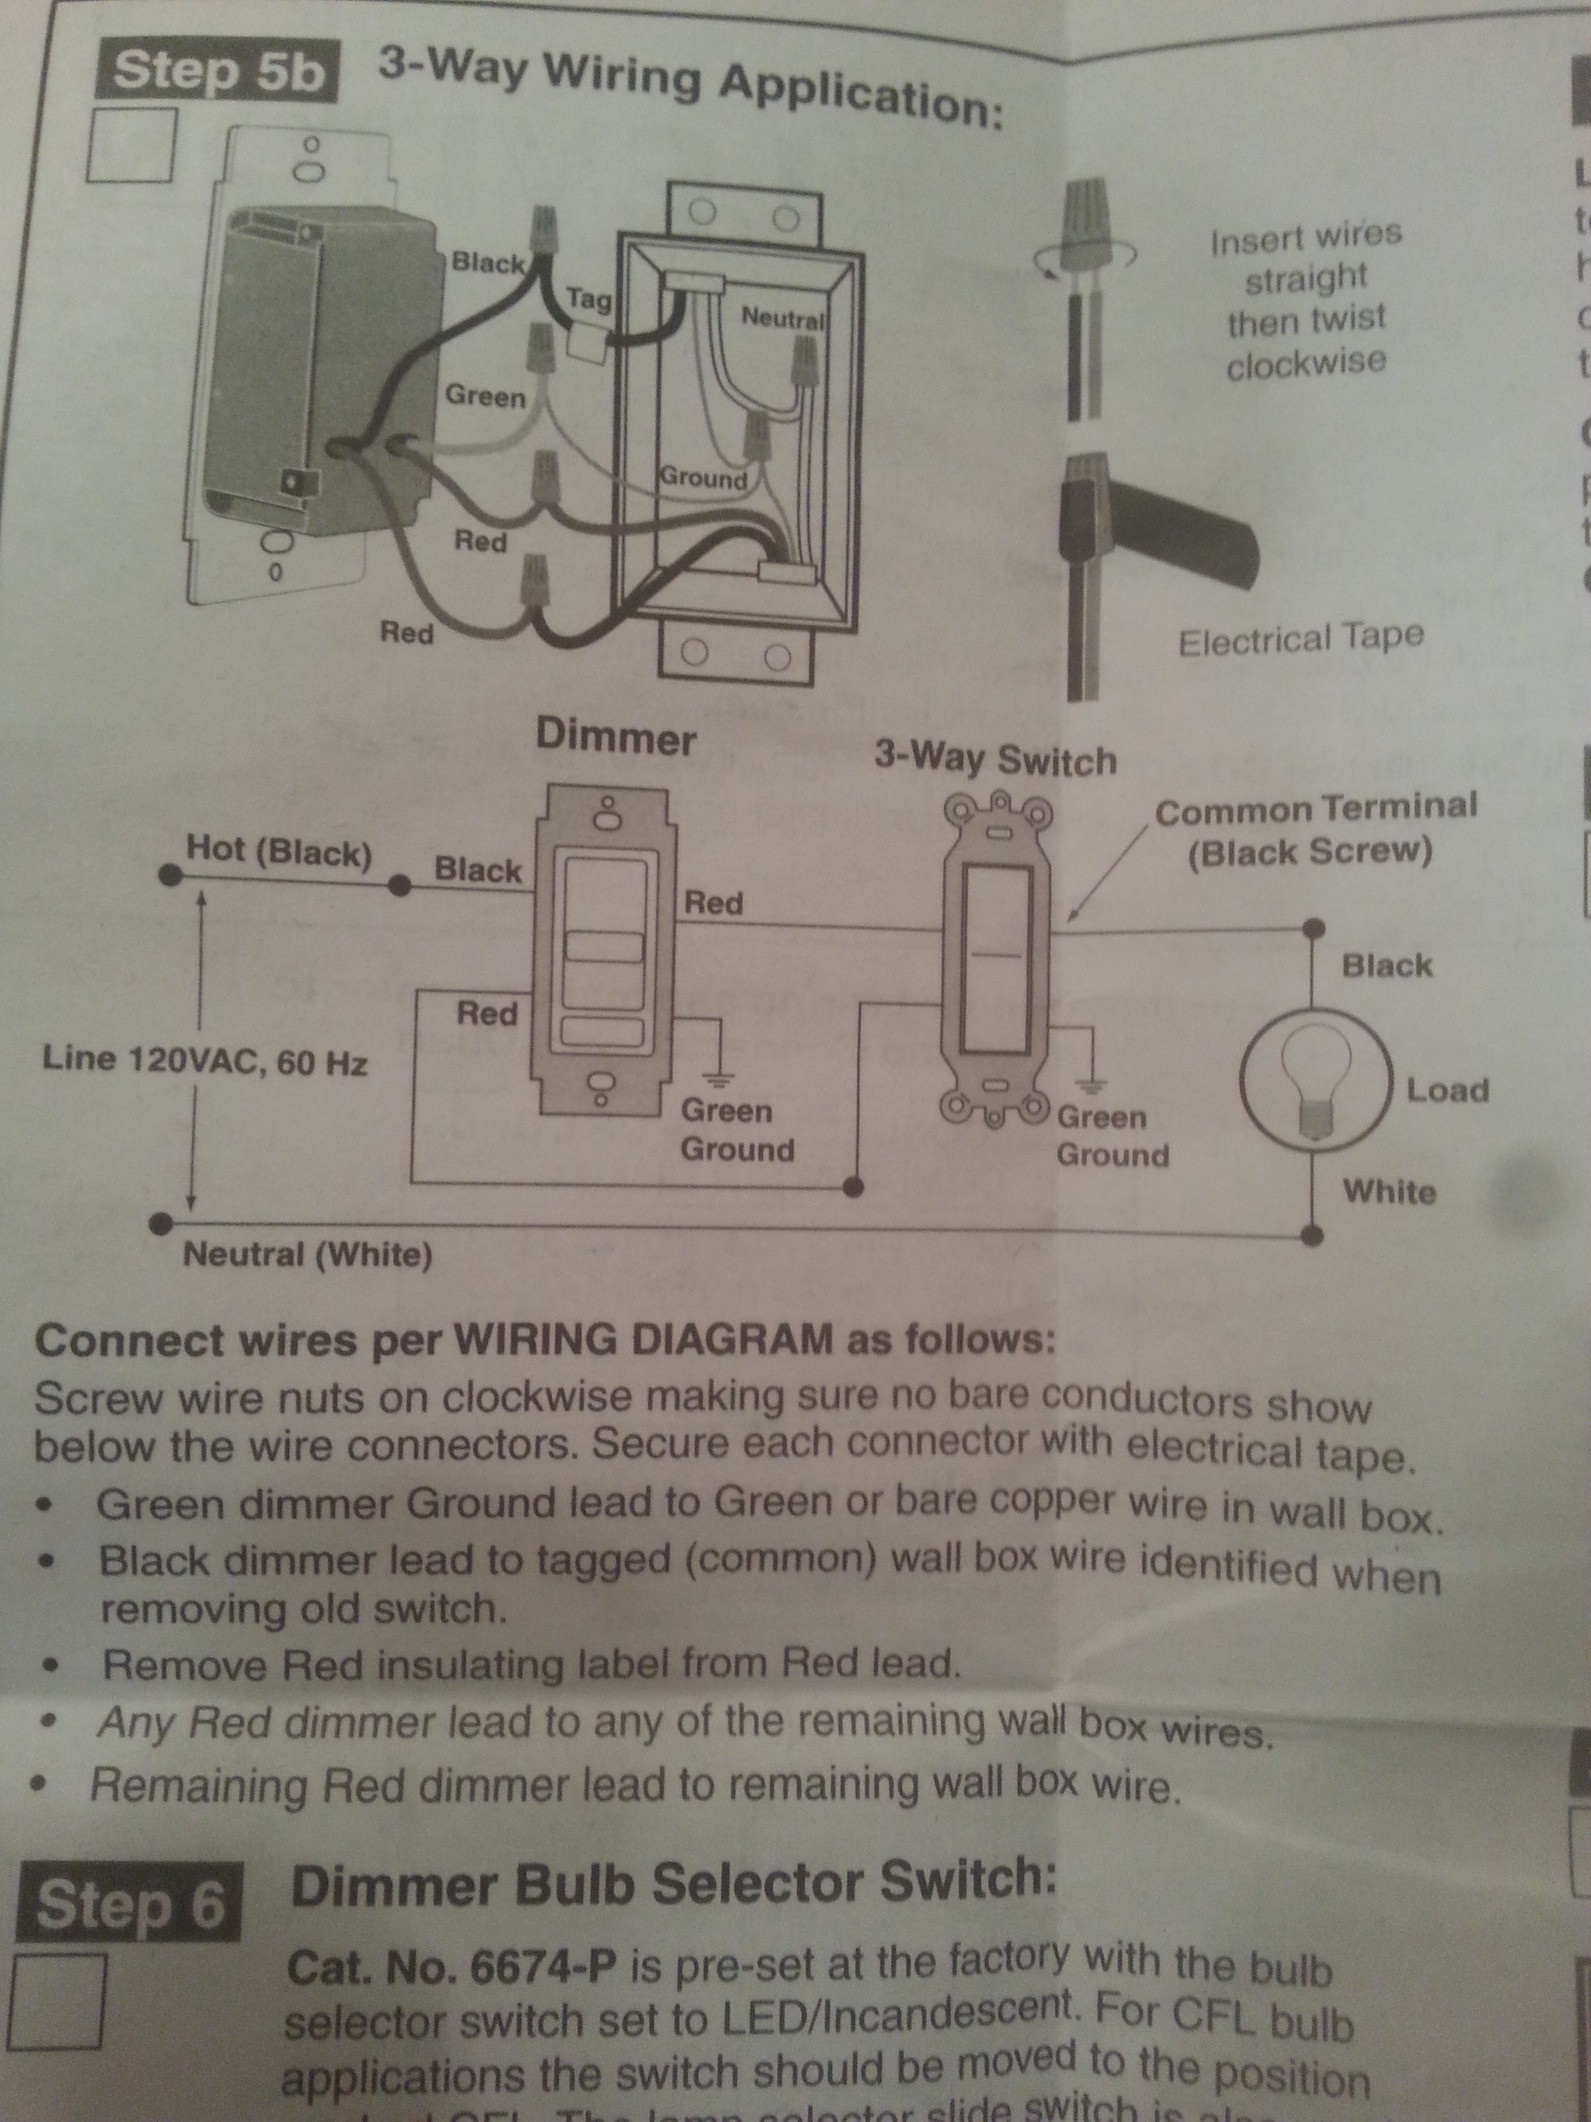 westinghouse 3 way fan light switch wiring diagram land rover discovery 2 stereo how do i wire a hard wired wall and remote for my